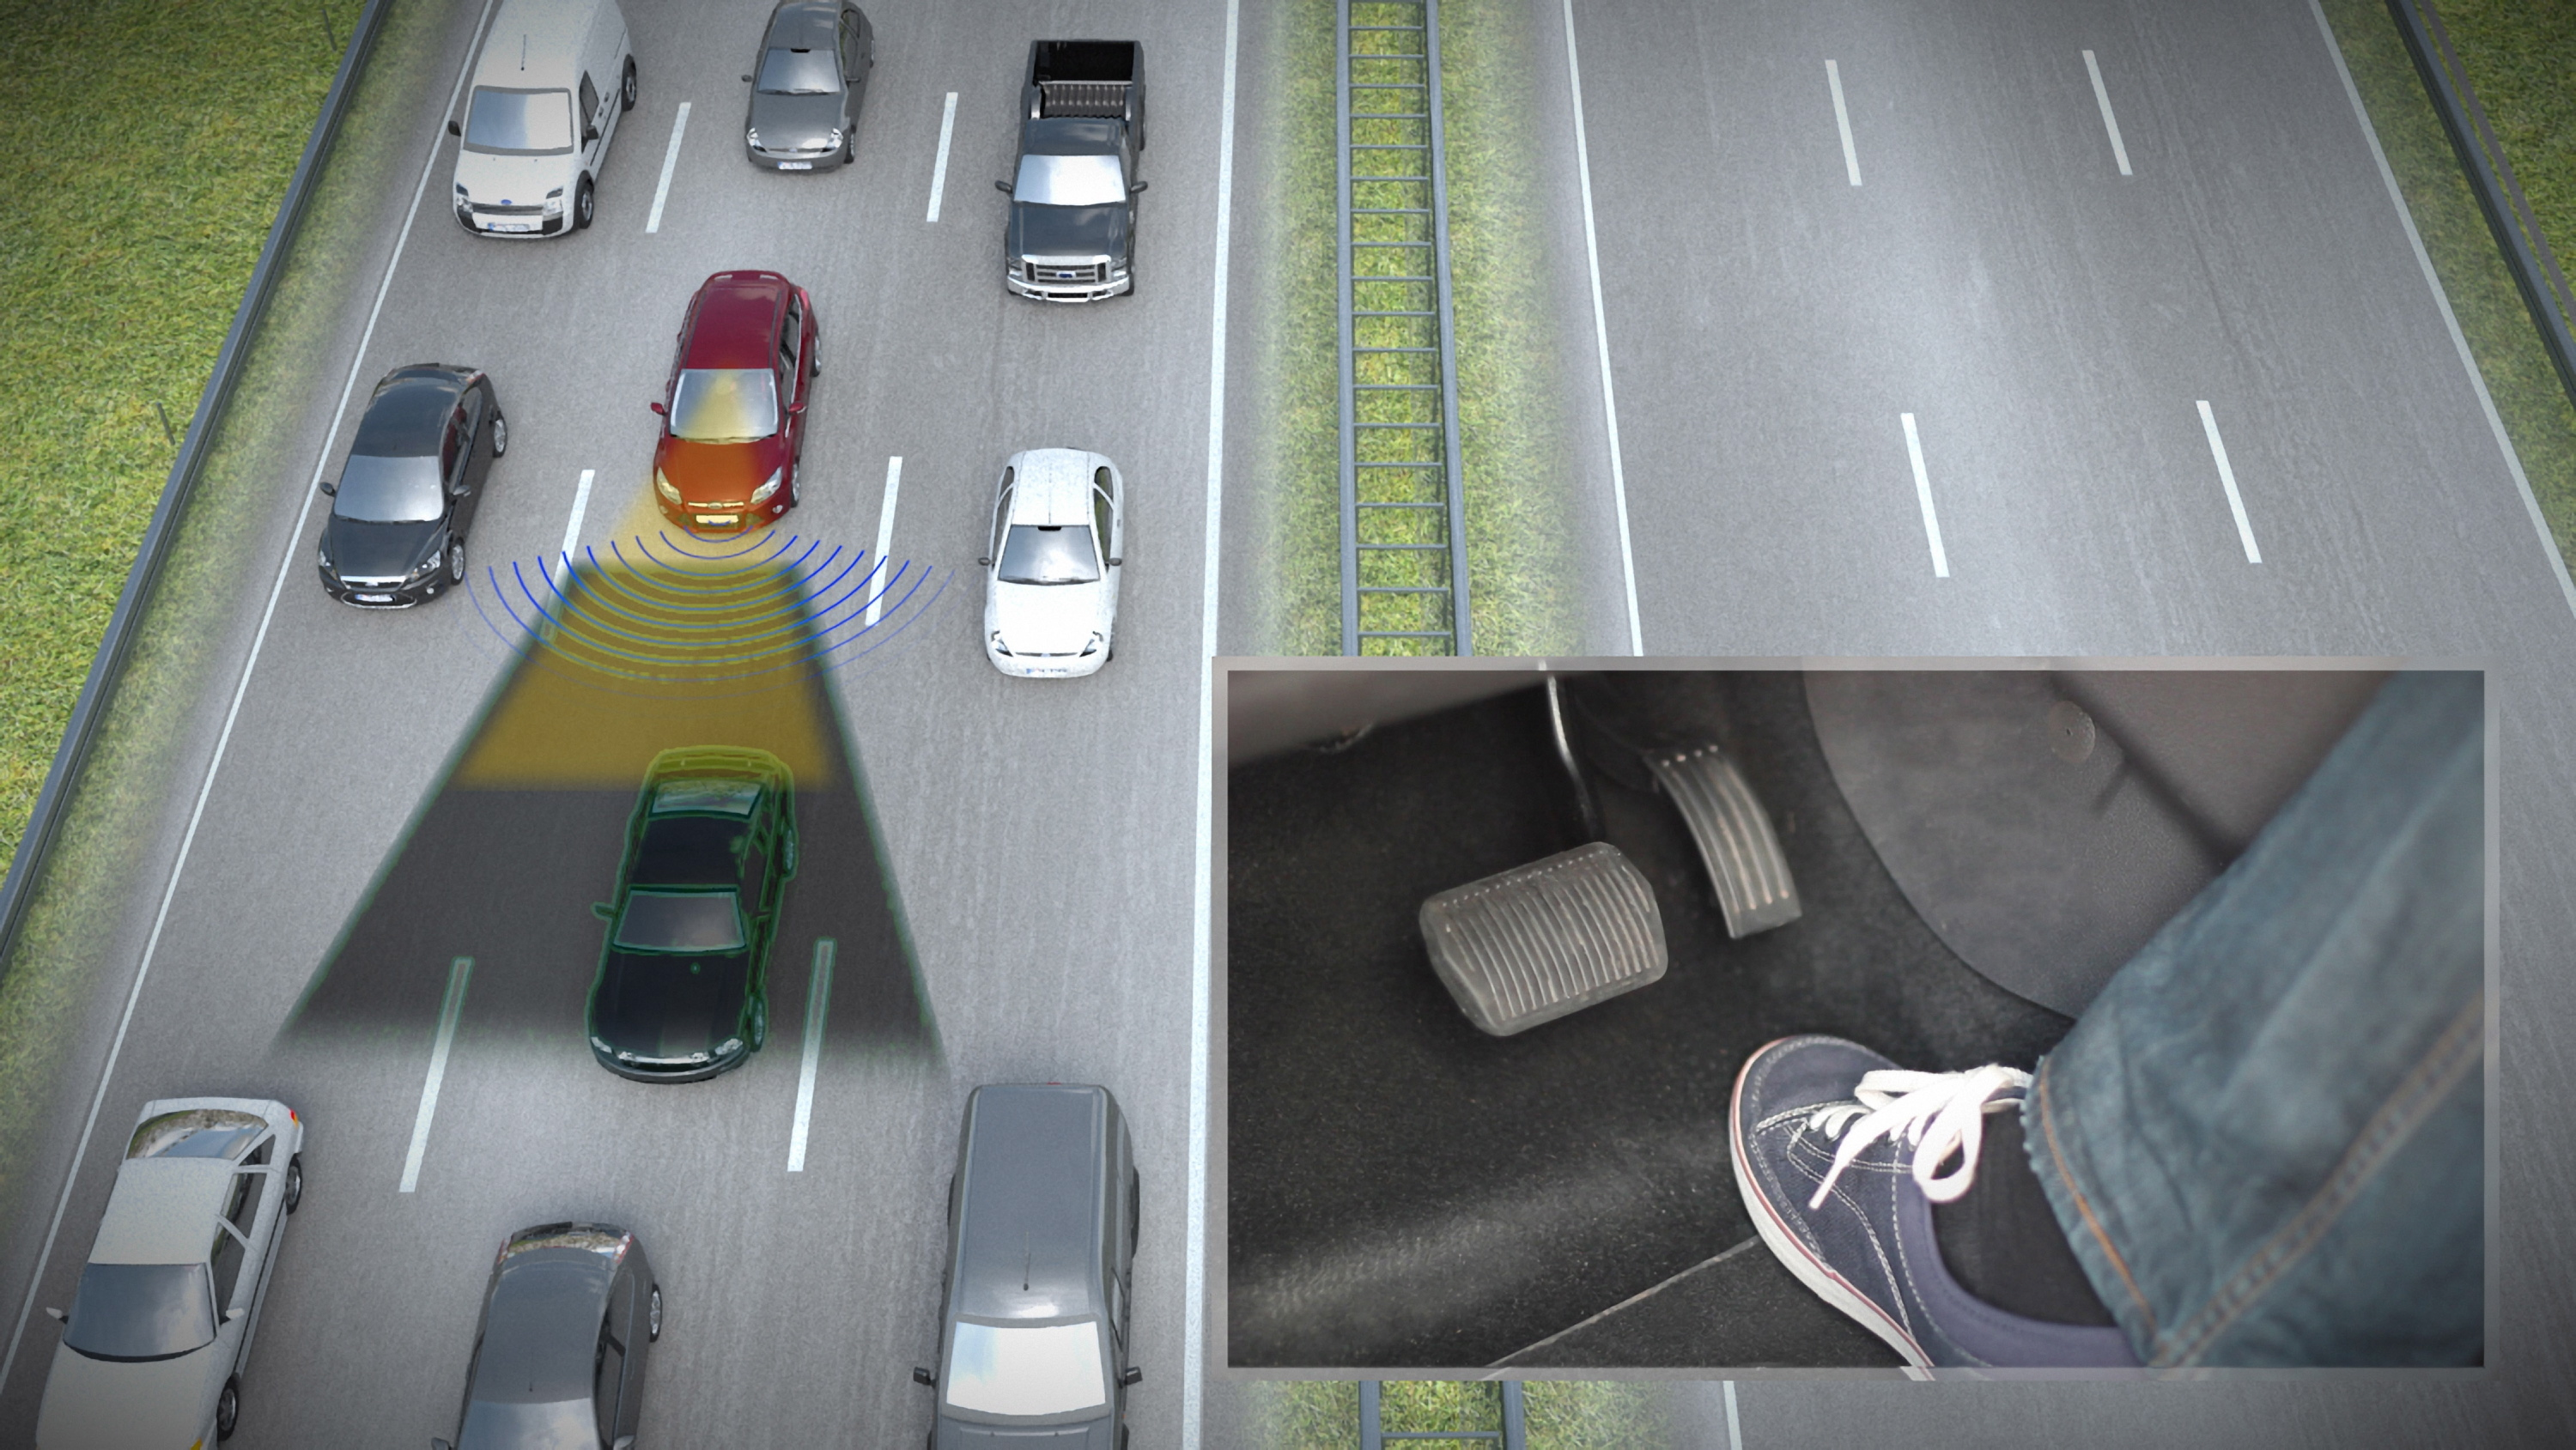 Using traffic jam assistant, the vehicle will regulate its speed.